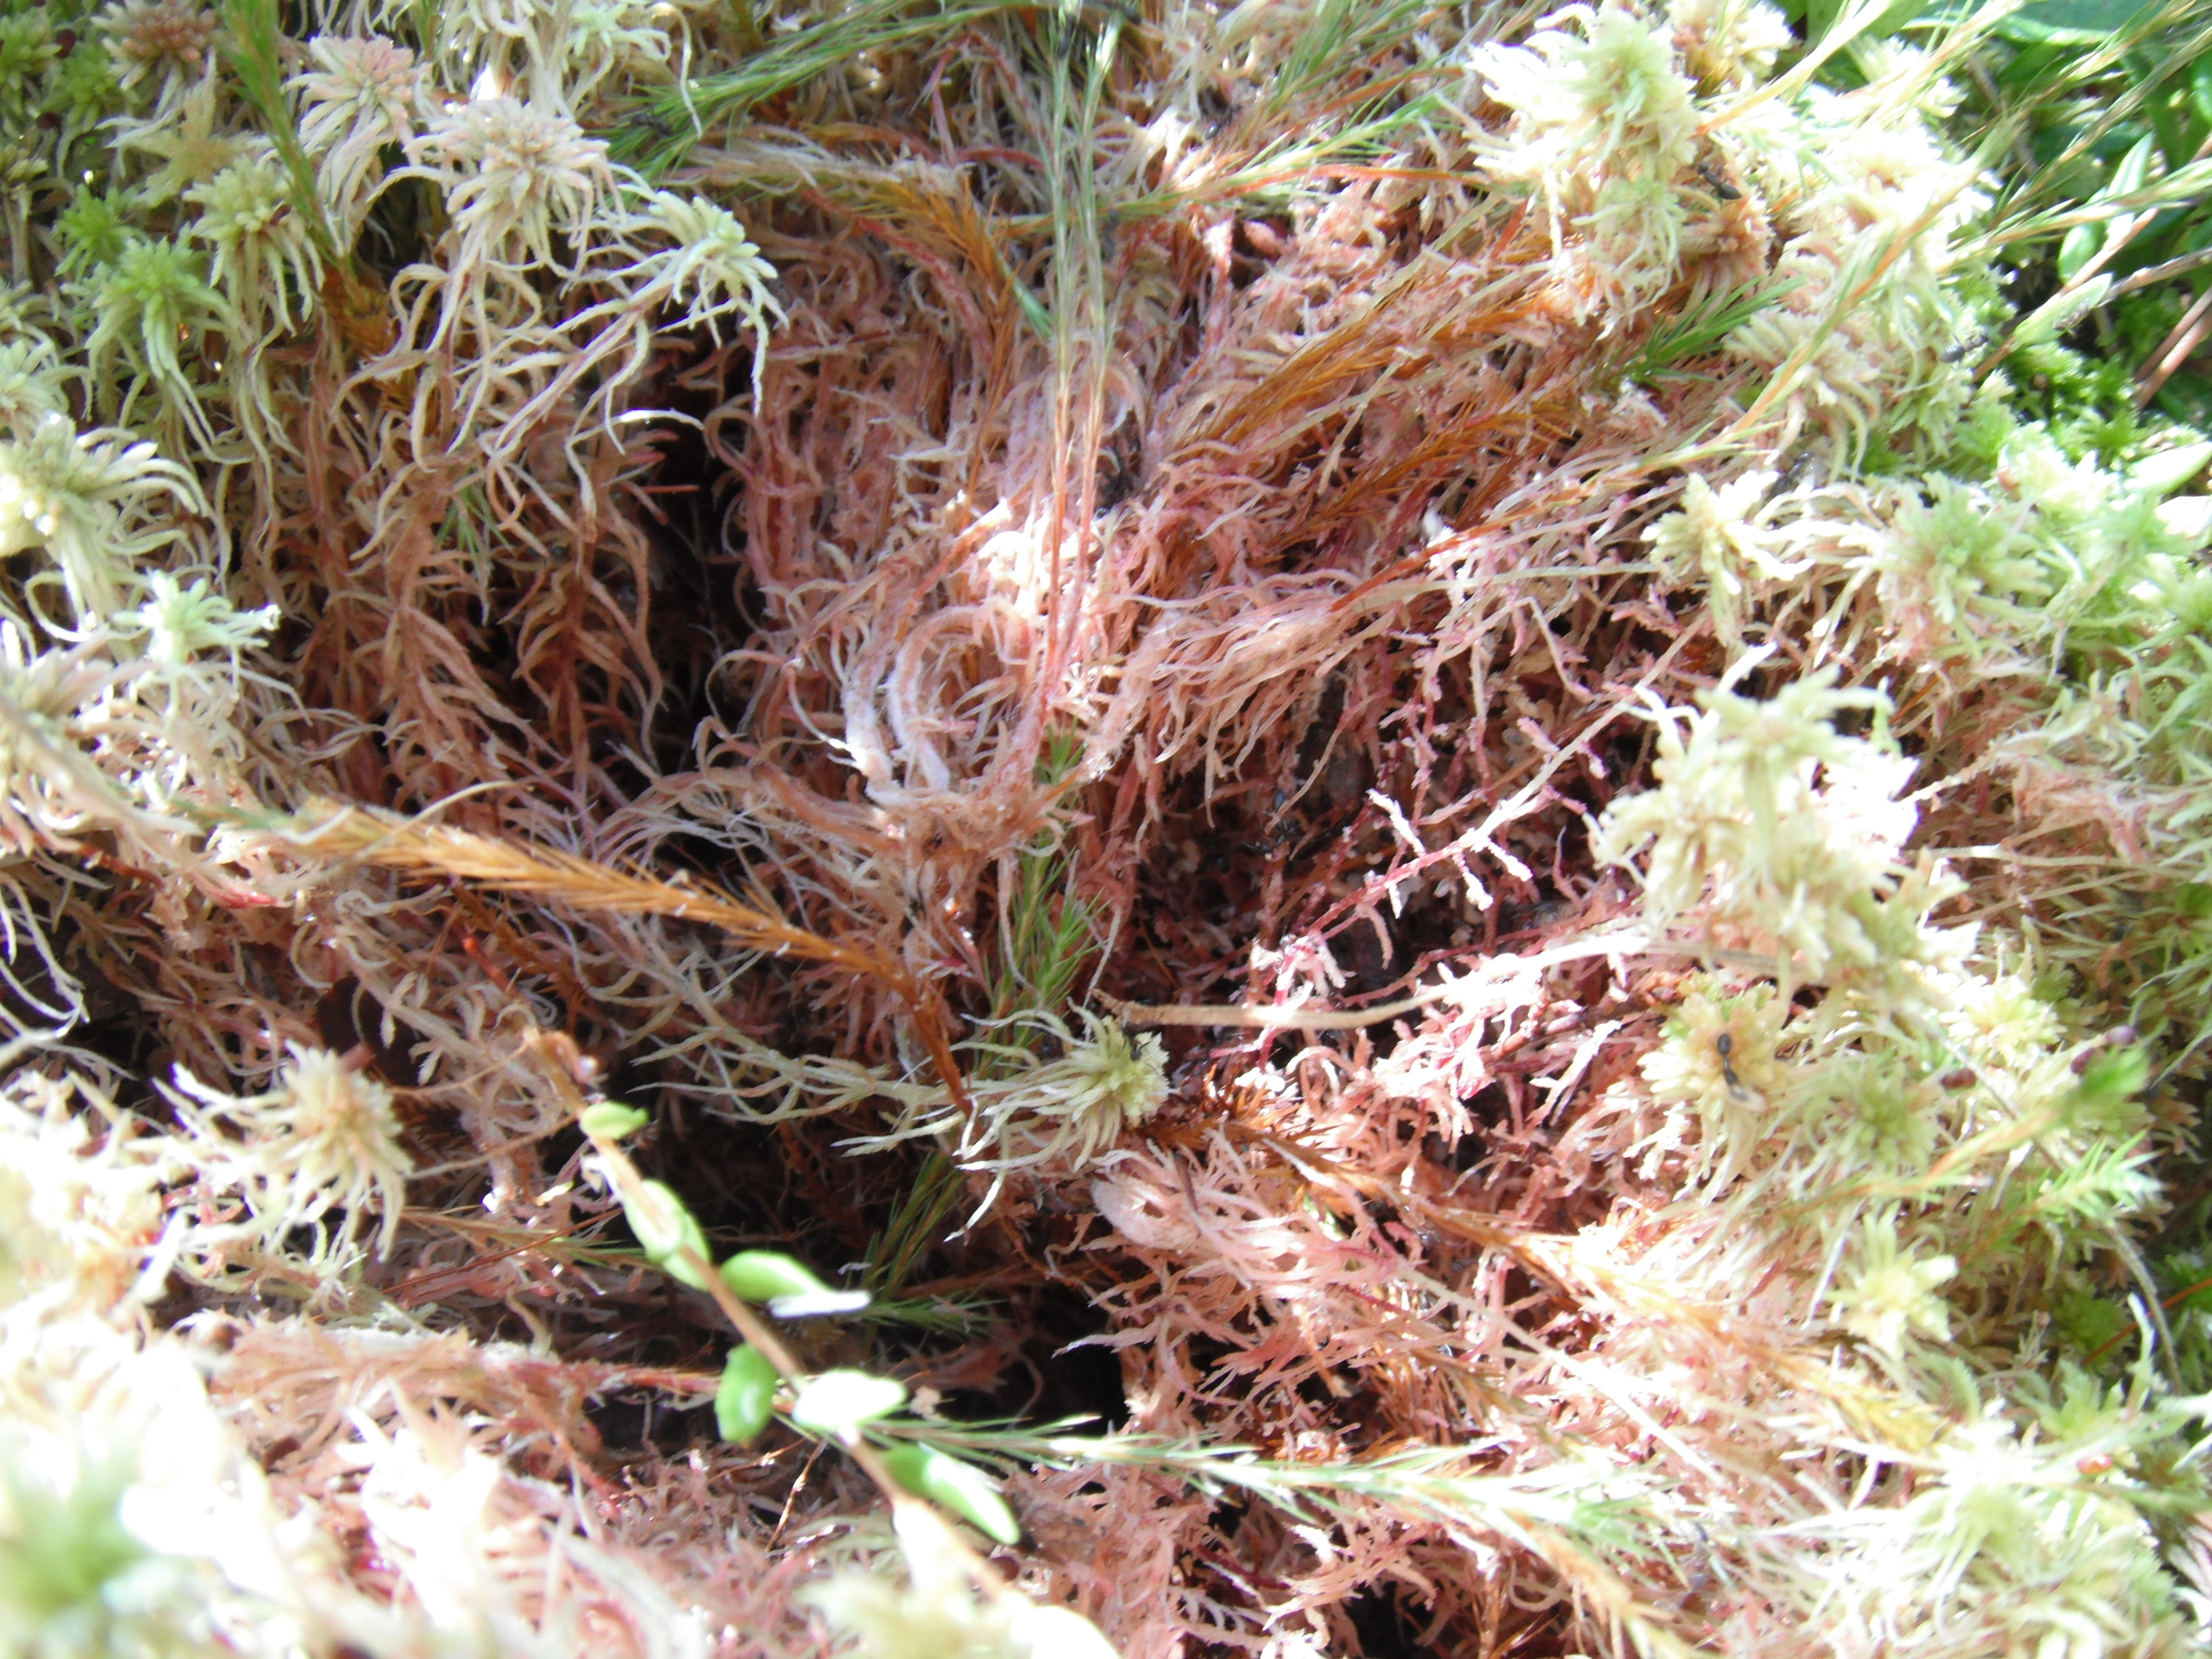 In the wild, cranberry rhizomes grow deep within sphagnum moss